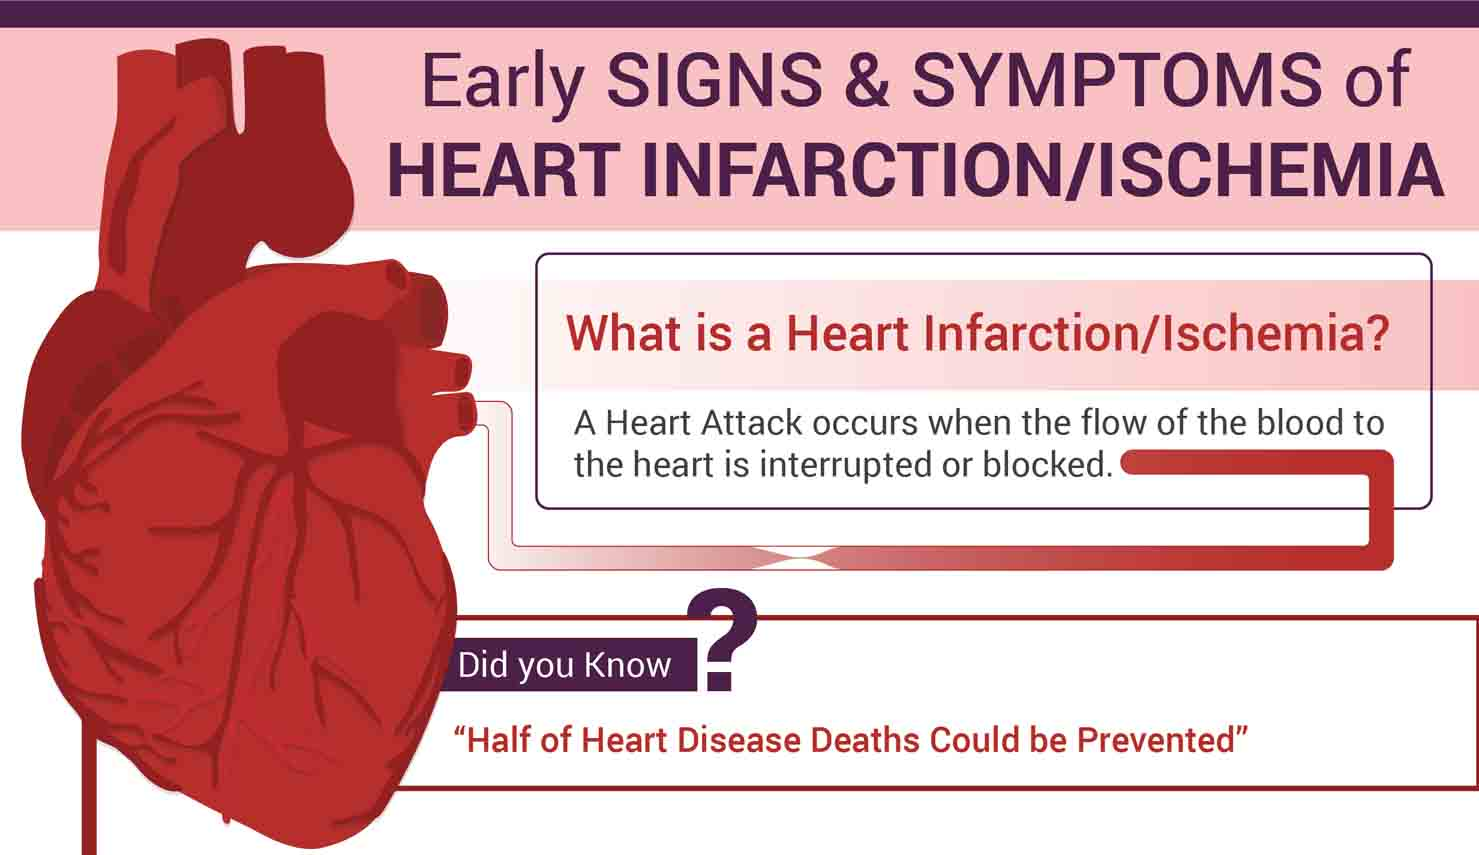 Early Signs & Symptoms of a Heart Attack